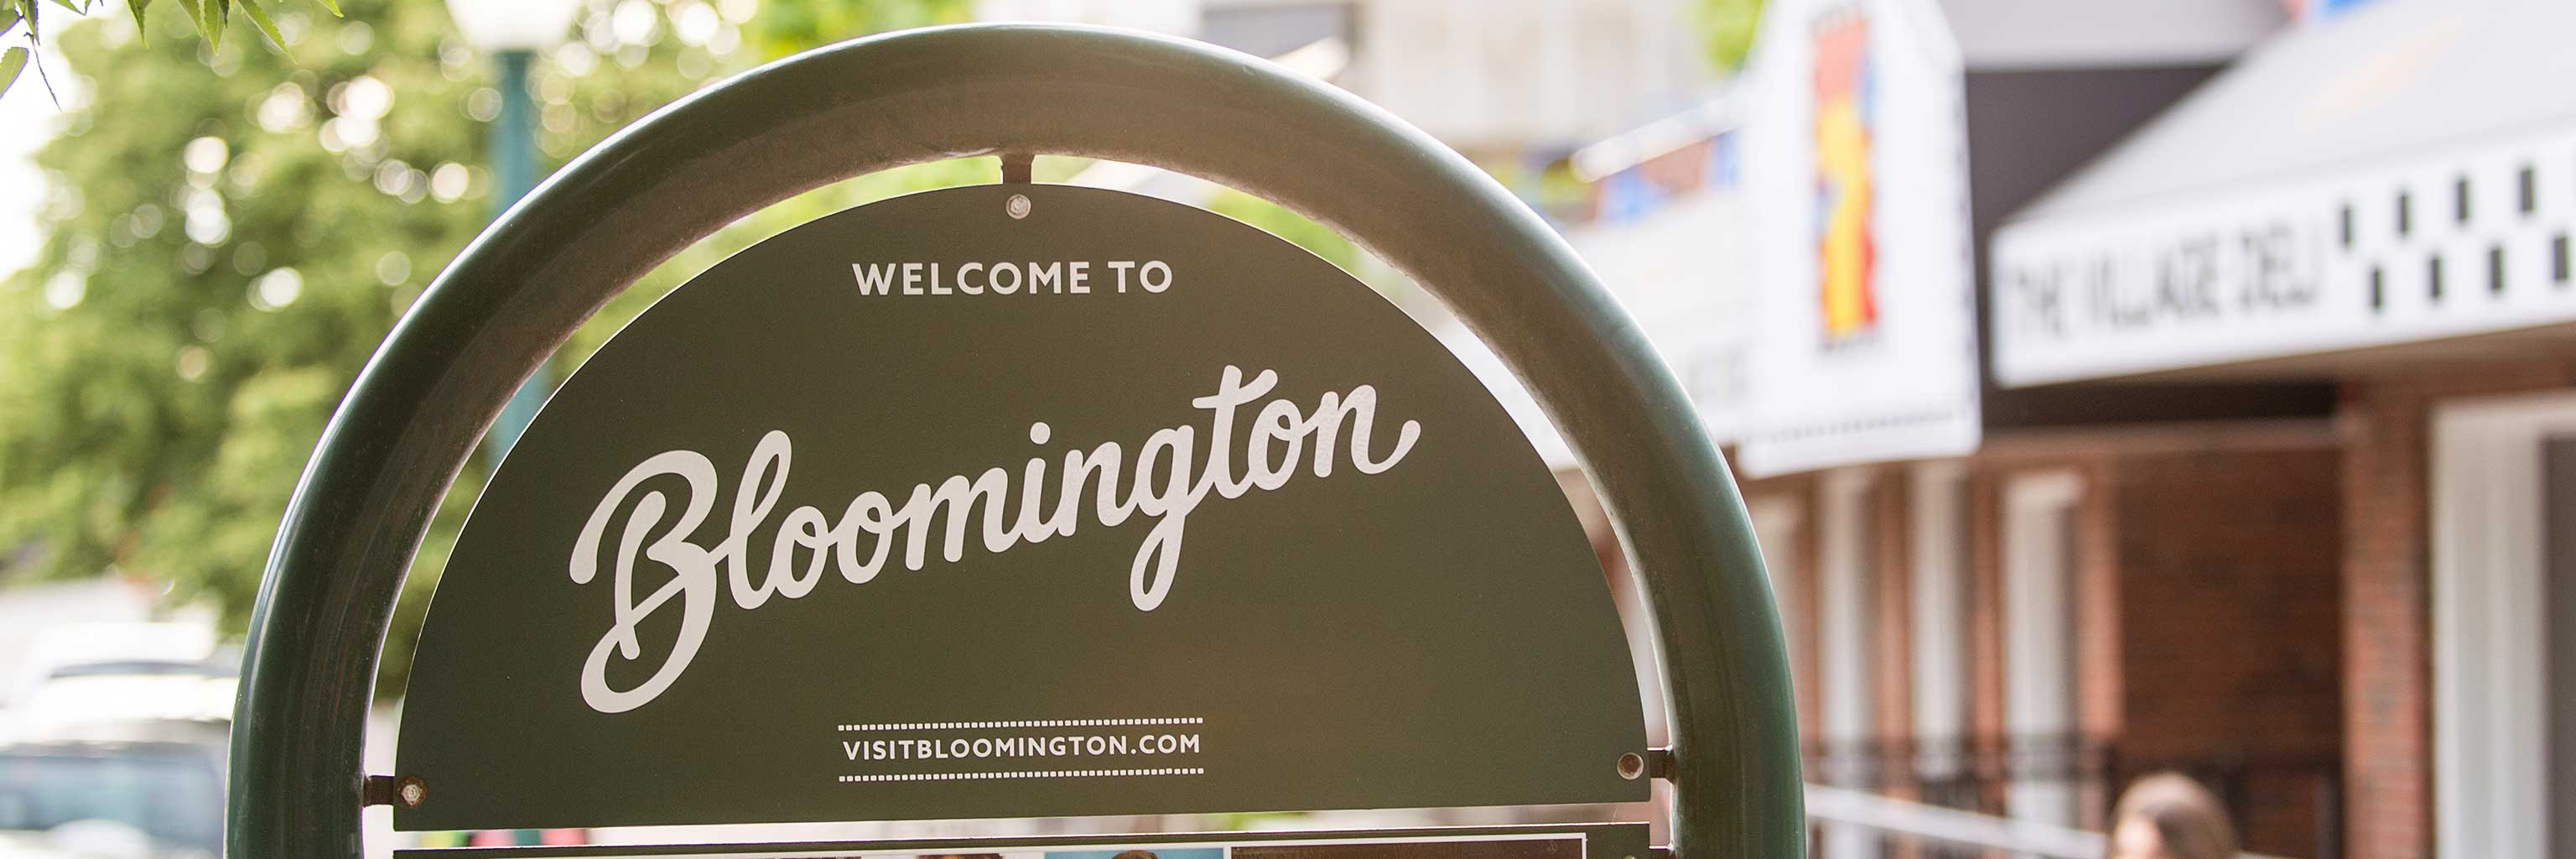 Bloomington's city visitor signs